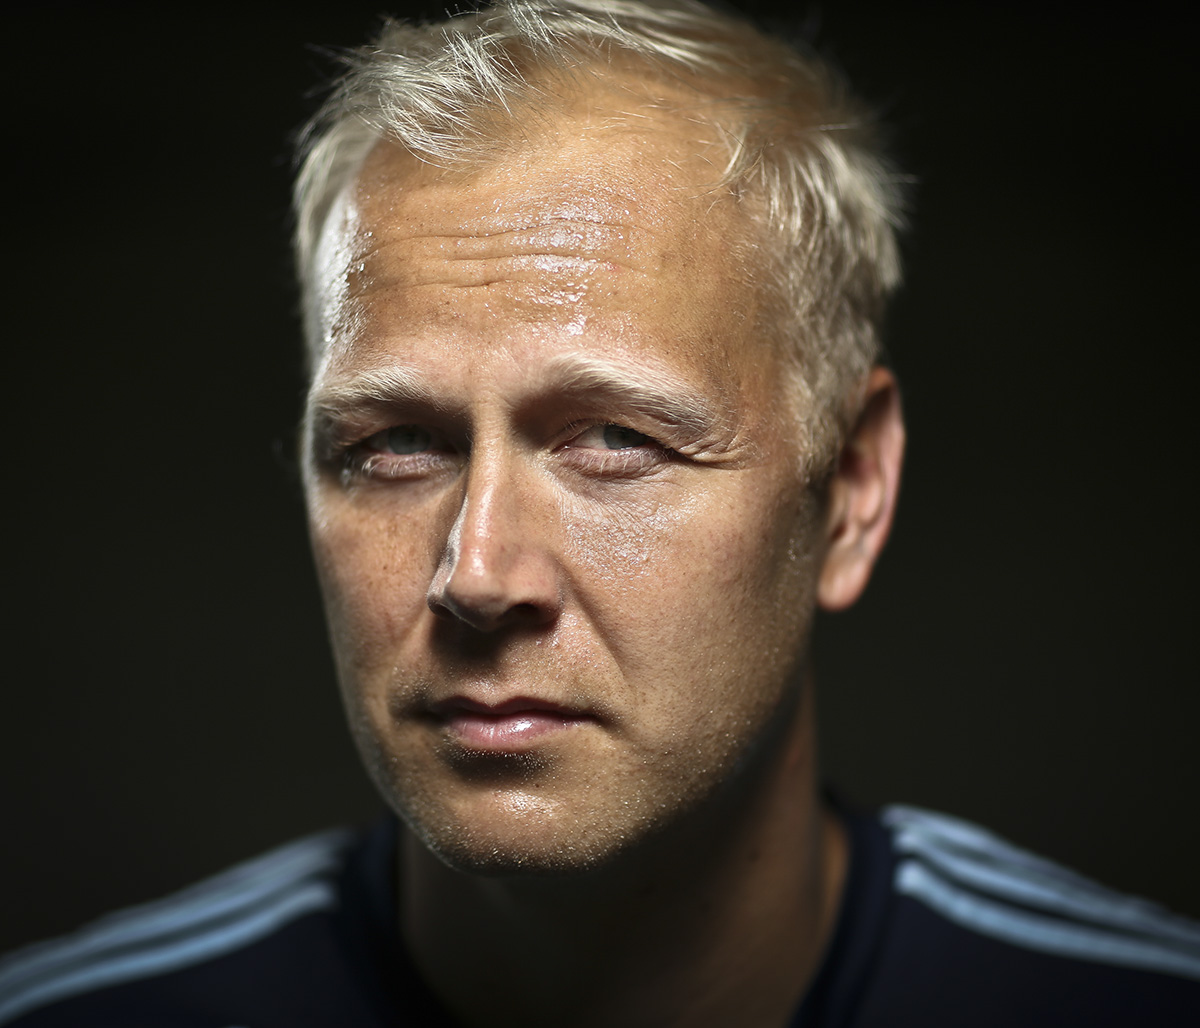 Mag Interview portrait of Jimmy Nielson, goalie for Sporting Kansas City.